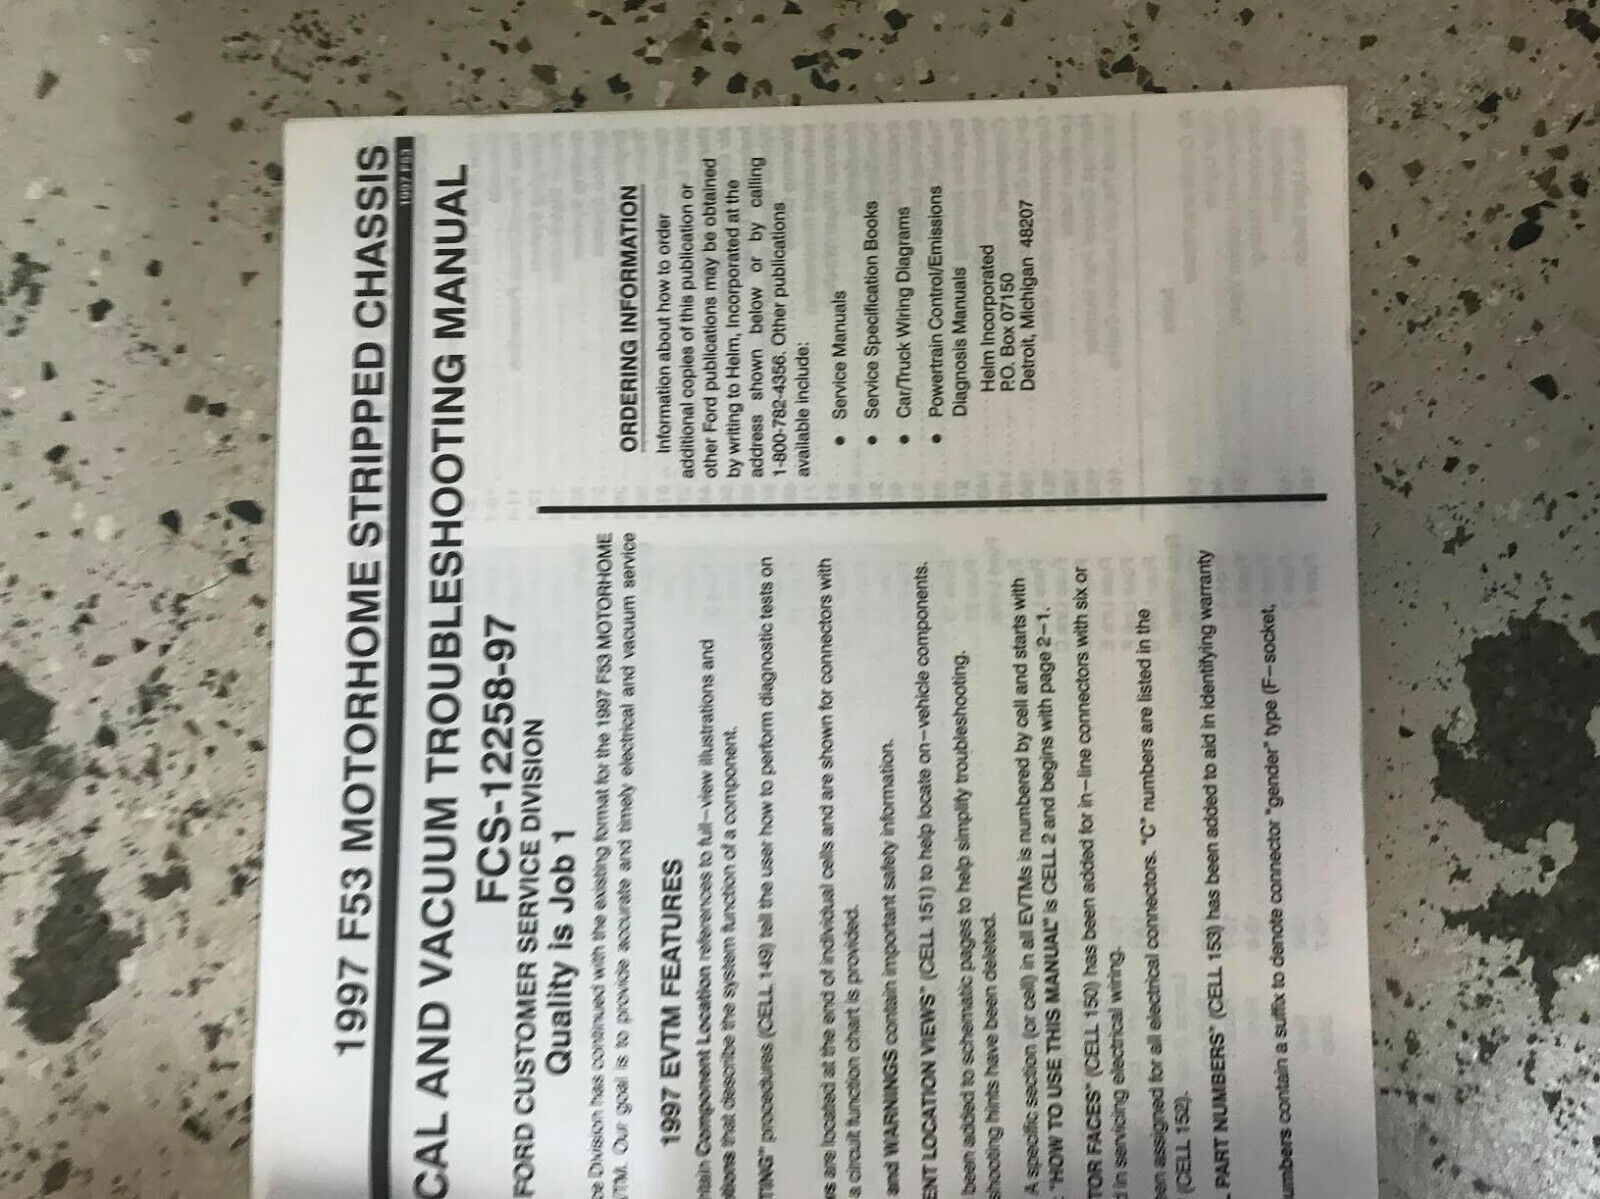 1997 FORD F-53 Motorhome Stripped Chassis Electrical Wiring Diagram Manual EVTM